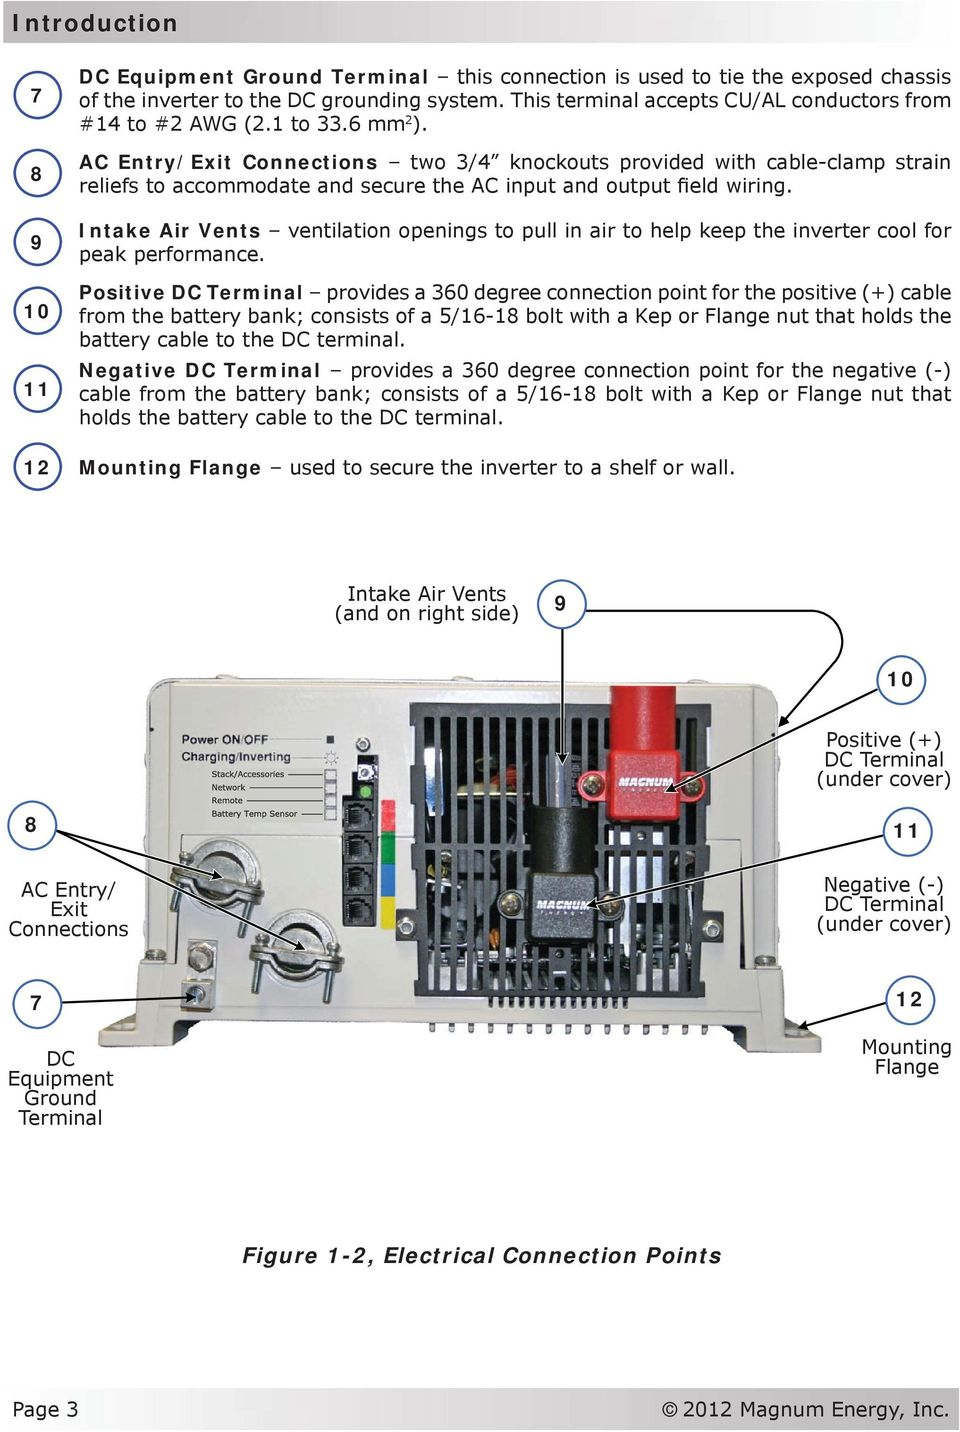 Ms Series Pure Sine Wave Inverter Charger Pdf Ambulance Wiring Diagram Ac Entry Exit Connections Two 3 4 Knockouts Provided With Cable Clamp Strain